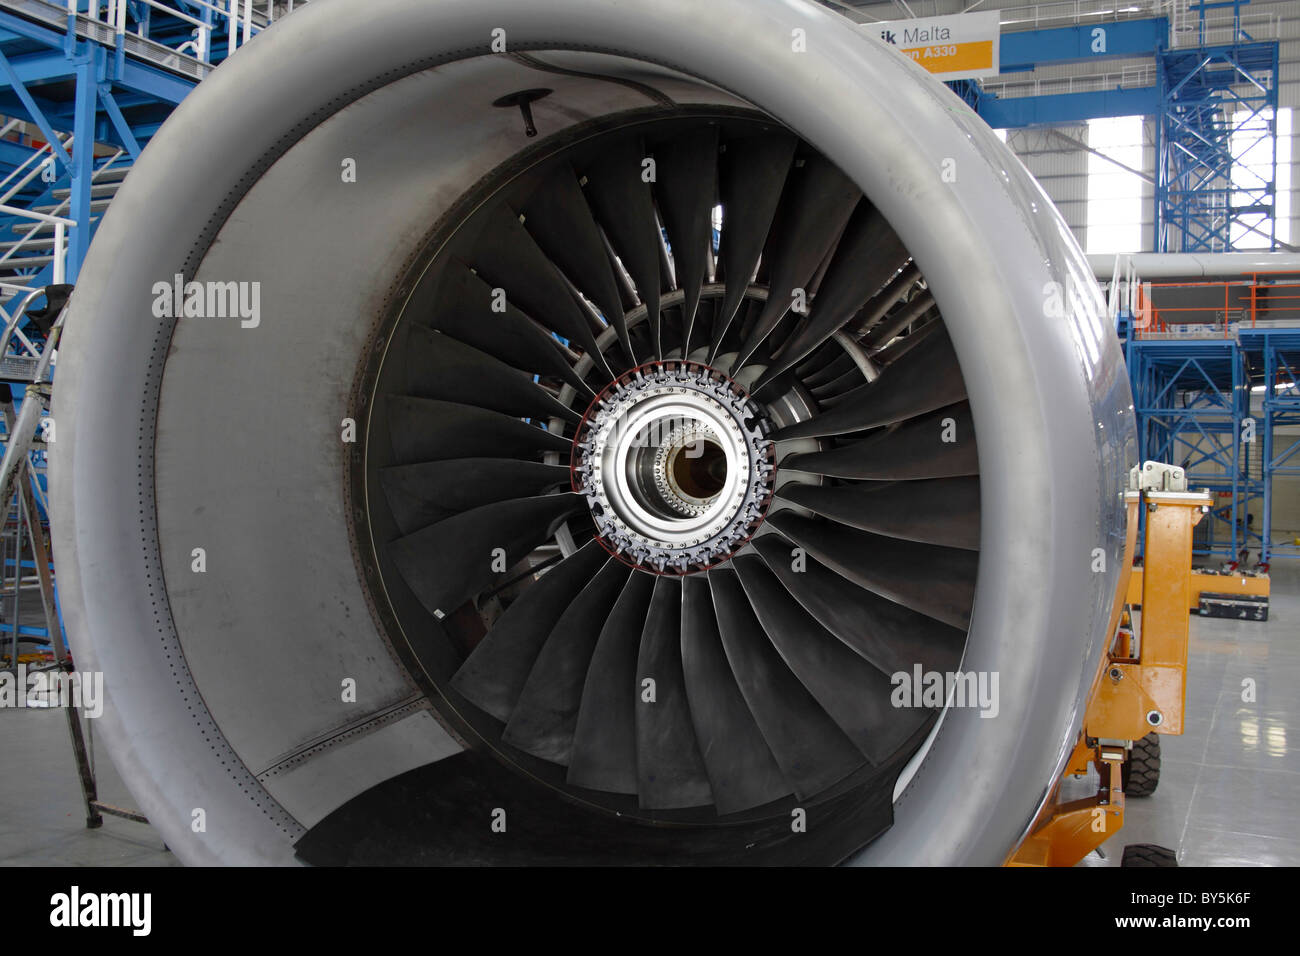 Rolls-Royce Trent 700 turbofan jet engine undergoing maintenance - Stock Image